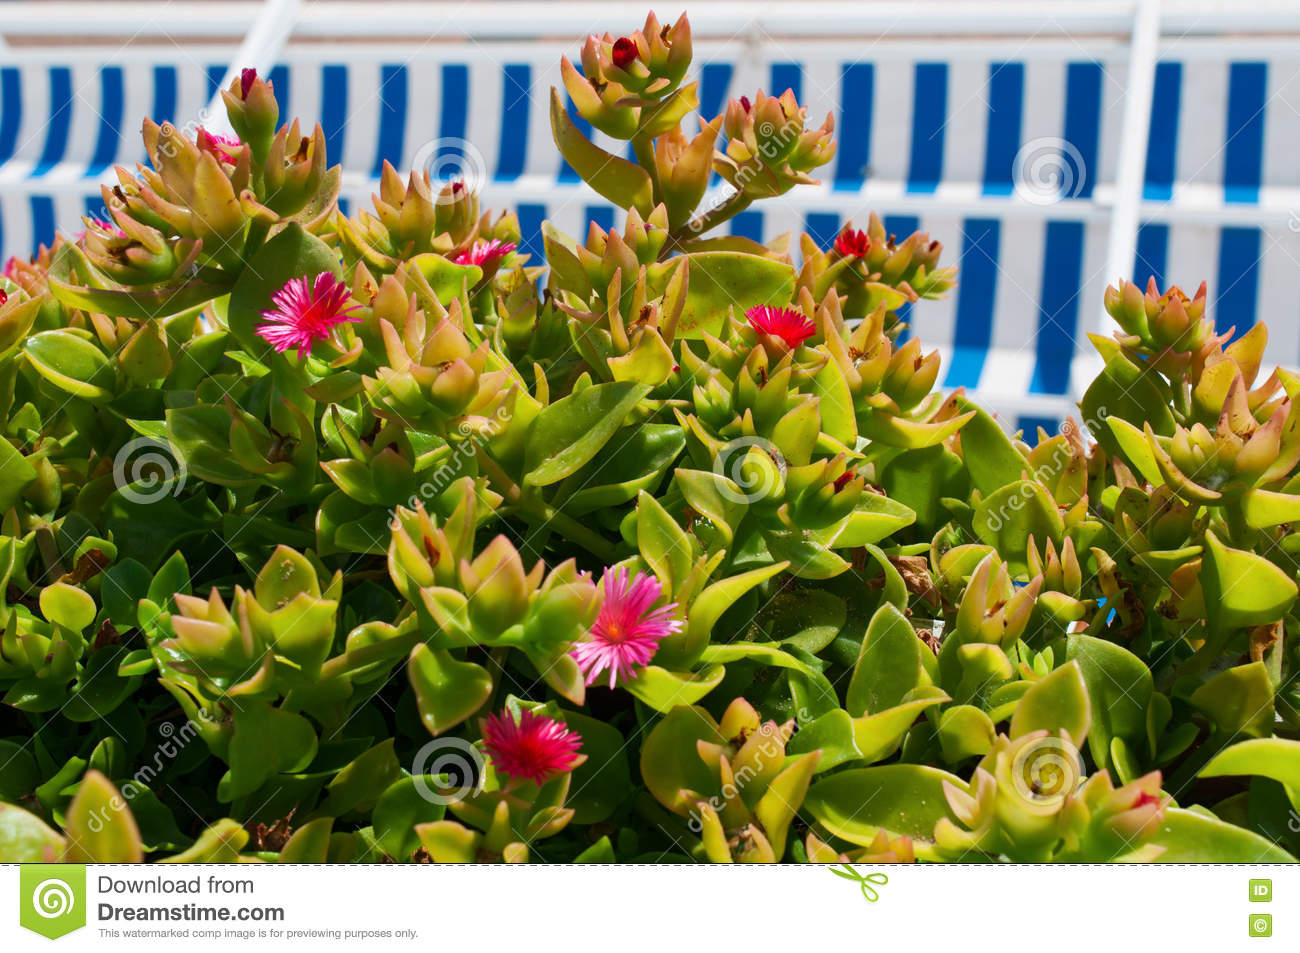 A Succulent Plant With Pink Flowers And Striped Awnings Stock Photo